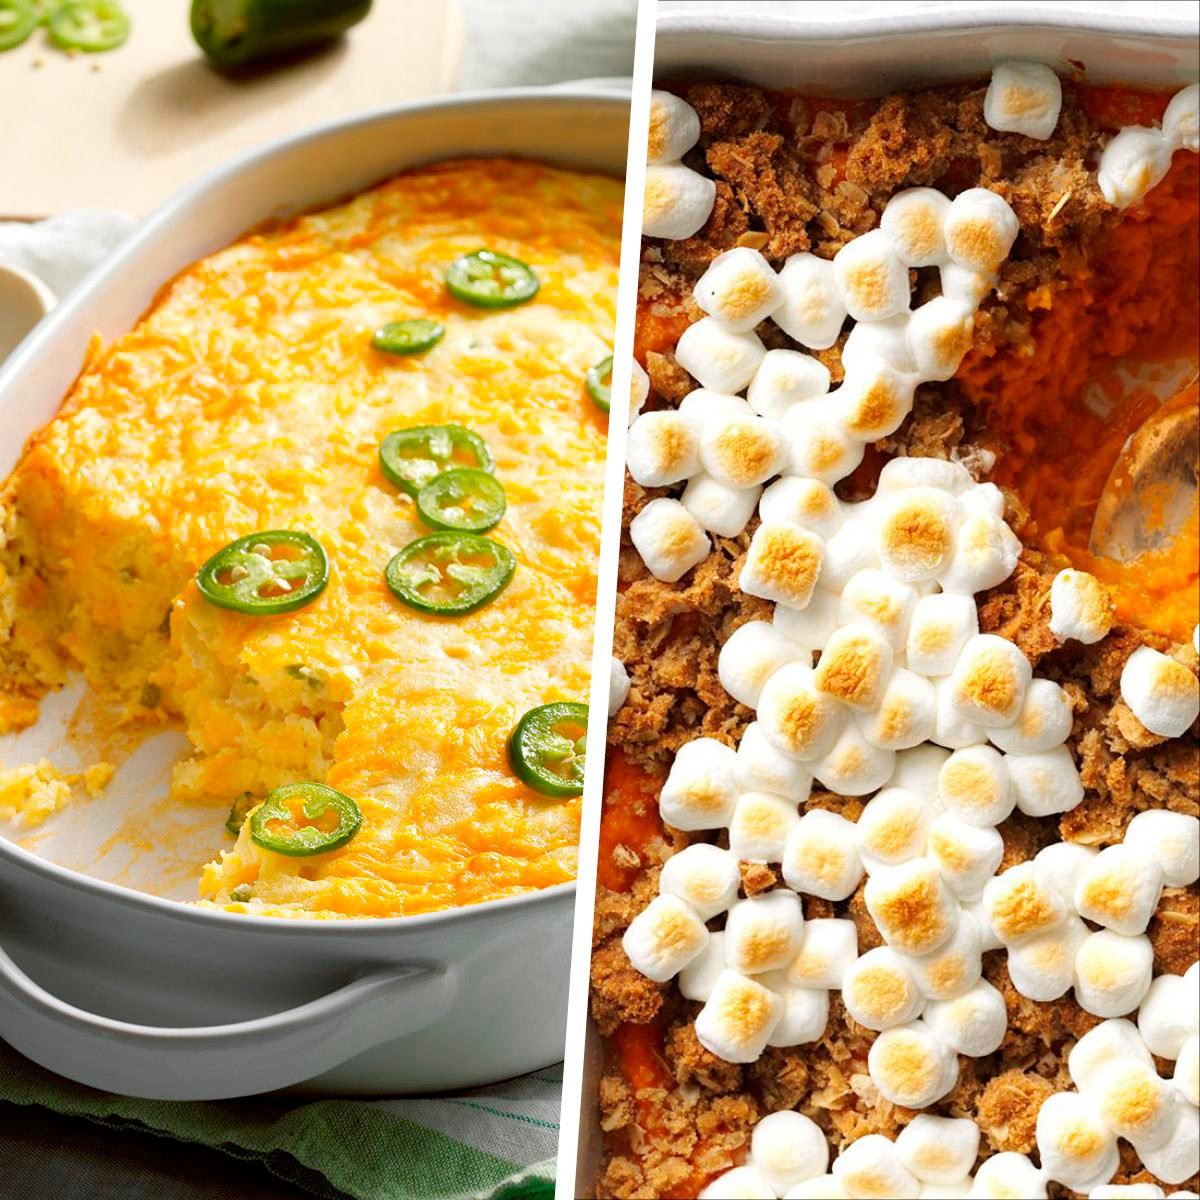 A Year's Worth of Our Best Casseroles